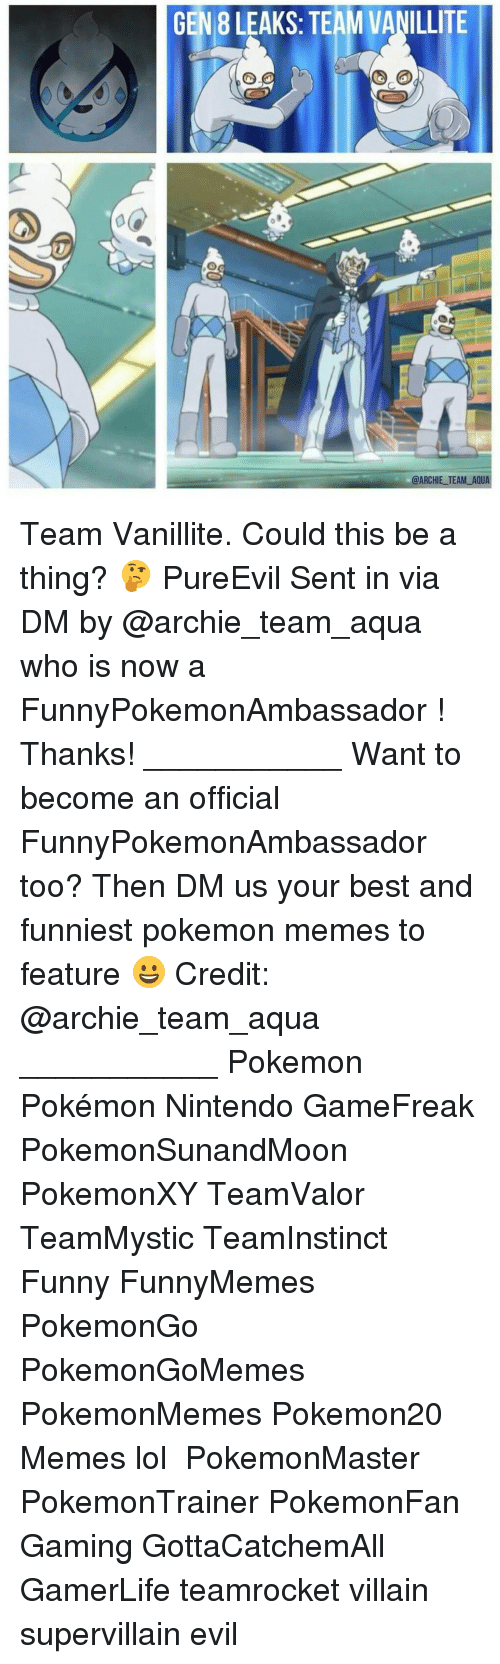 Funny, Lol, and Memes: GEN 8 LEAKS: TEAM VANILLITE  @ARCHIE TEAM AQUA Team Vanillite. Could this be a thing? 🤔 PureEvil Sent in via DM by @archie_team_aqua who is now a FunnyPokemonAmbassador ! Thanks! ___________ Want to become an official FunnyPokemonAmbassador too? Then DM us your best and funniest pokemon memes to feature 😀 Credit: @archie_team_aqua ___________ Pokemon Pokémon Nintendo GameFreak PokemonSunandMoon PokemonXY TeamValor TeamMystic TeamInstinct Funny FunnyMemes PokemonGo PokemonGoMemes PokemonMemes Pokemon20 Memes lol ポケットモンスター PokemonMaster PokemonTrainer PokemonFan Gaming GottaCatchemAll GamerLife teamrocket villain supervillain evil